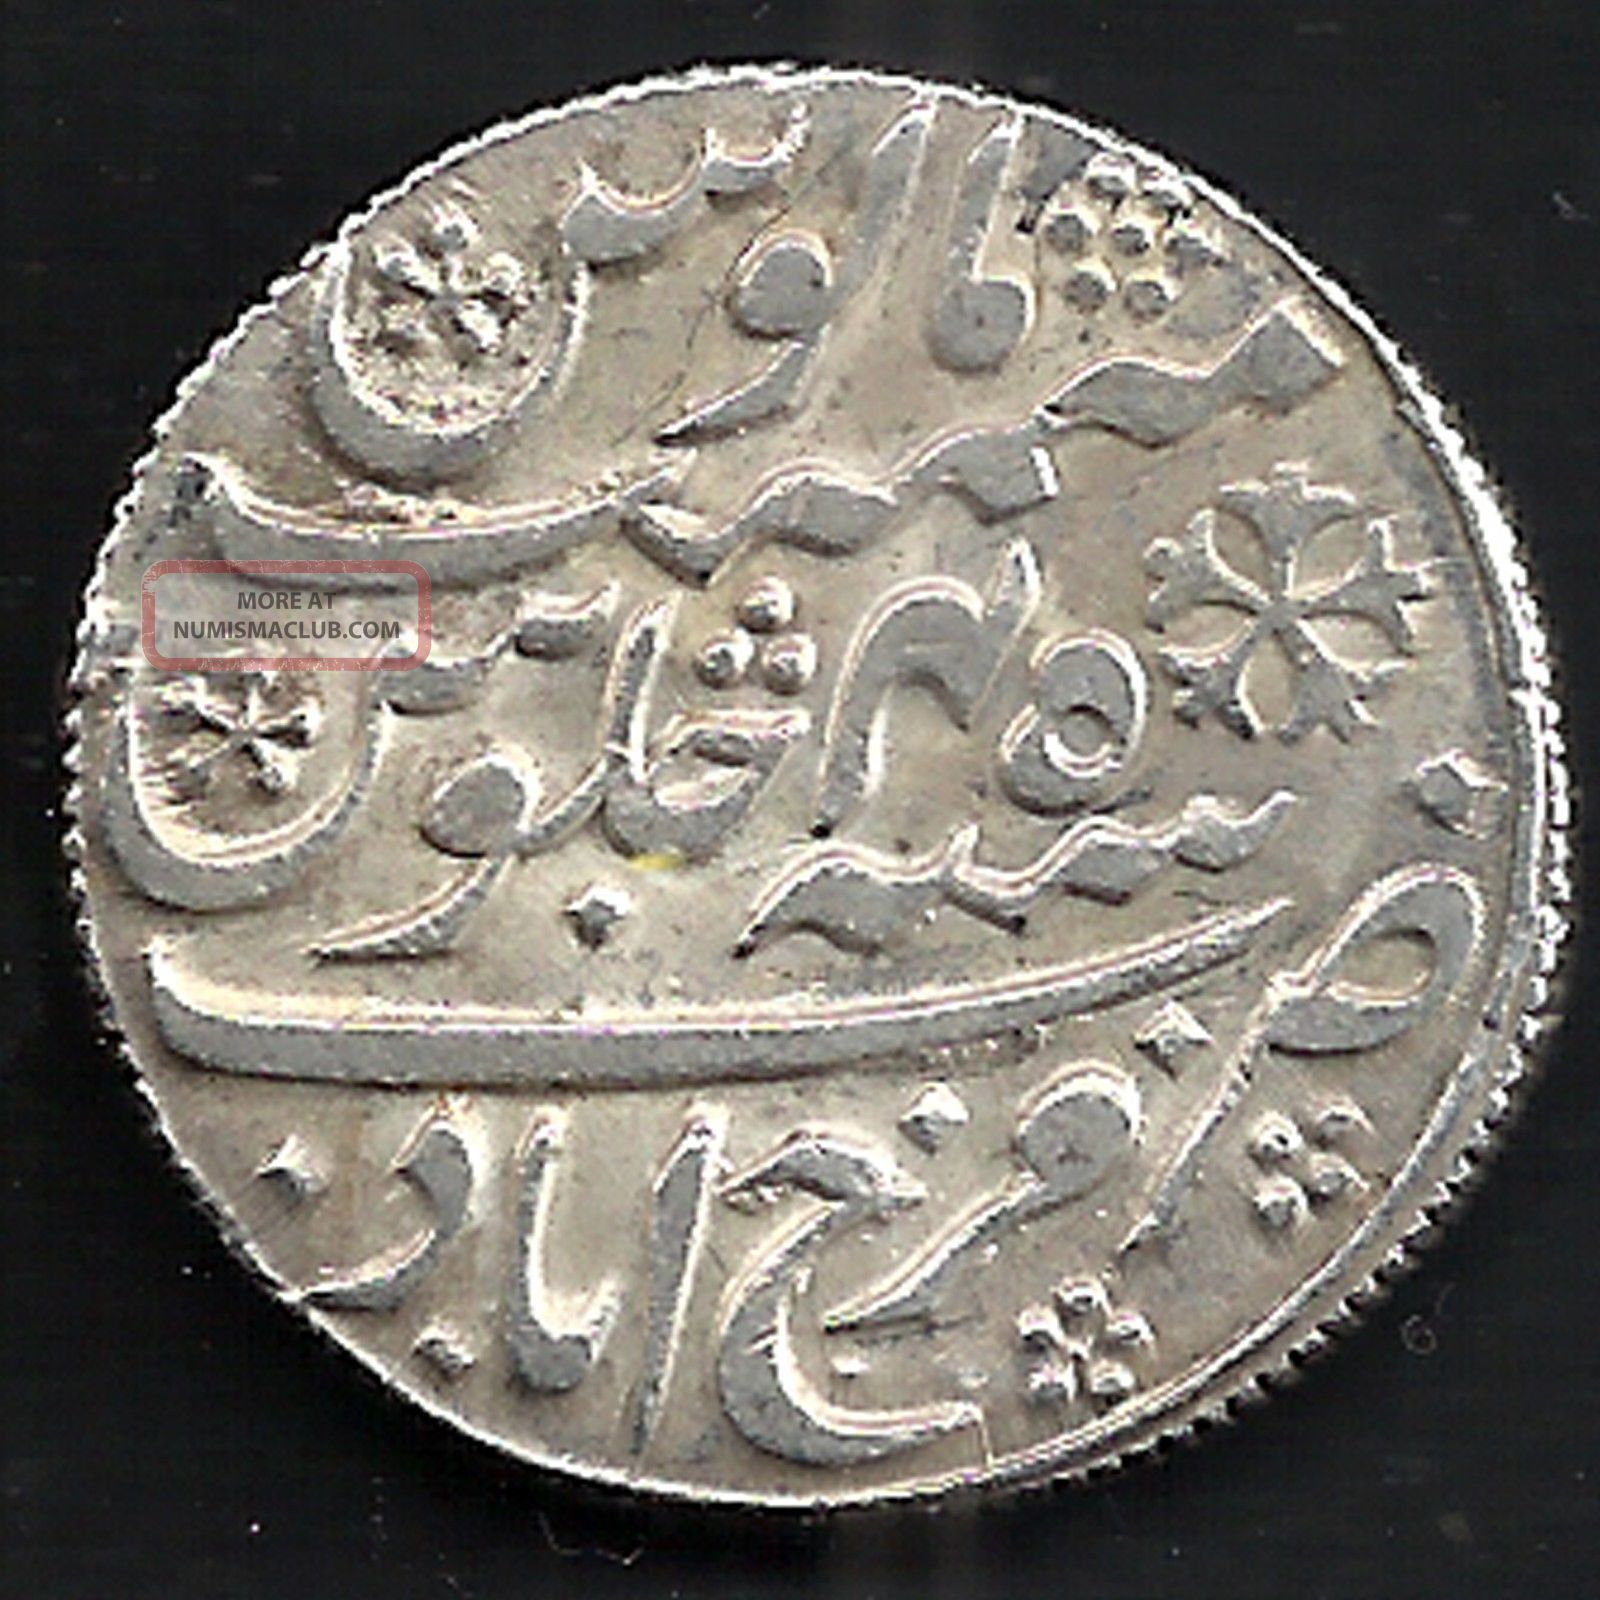 Bengal Presidency - Ry 45 - Farukhabad - One Rupee - Rarest Silver Coin India photo